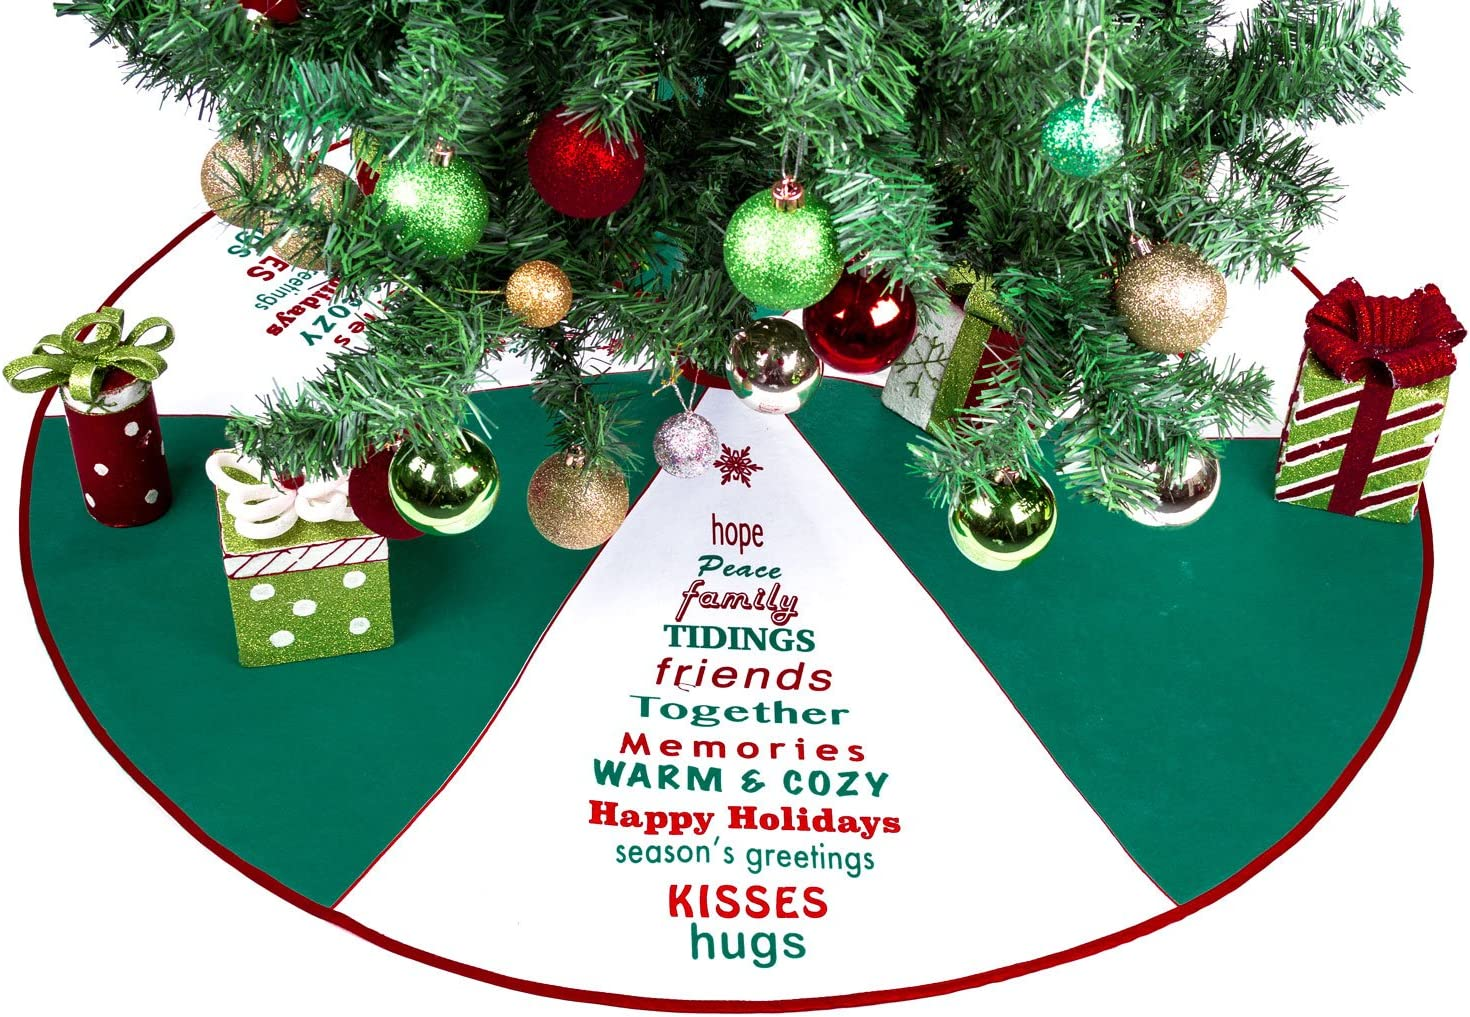 Green & White Tree Skirt with Greetings - 36